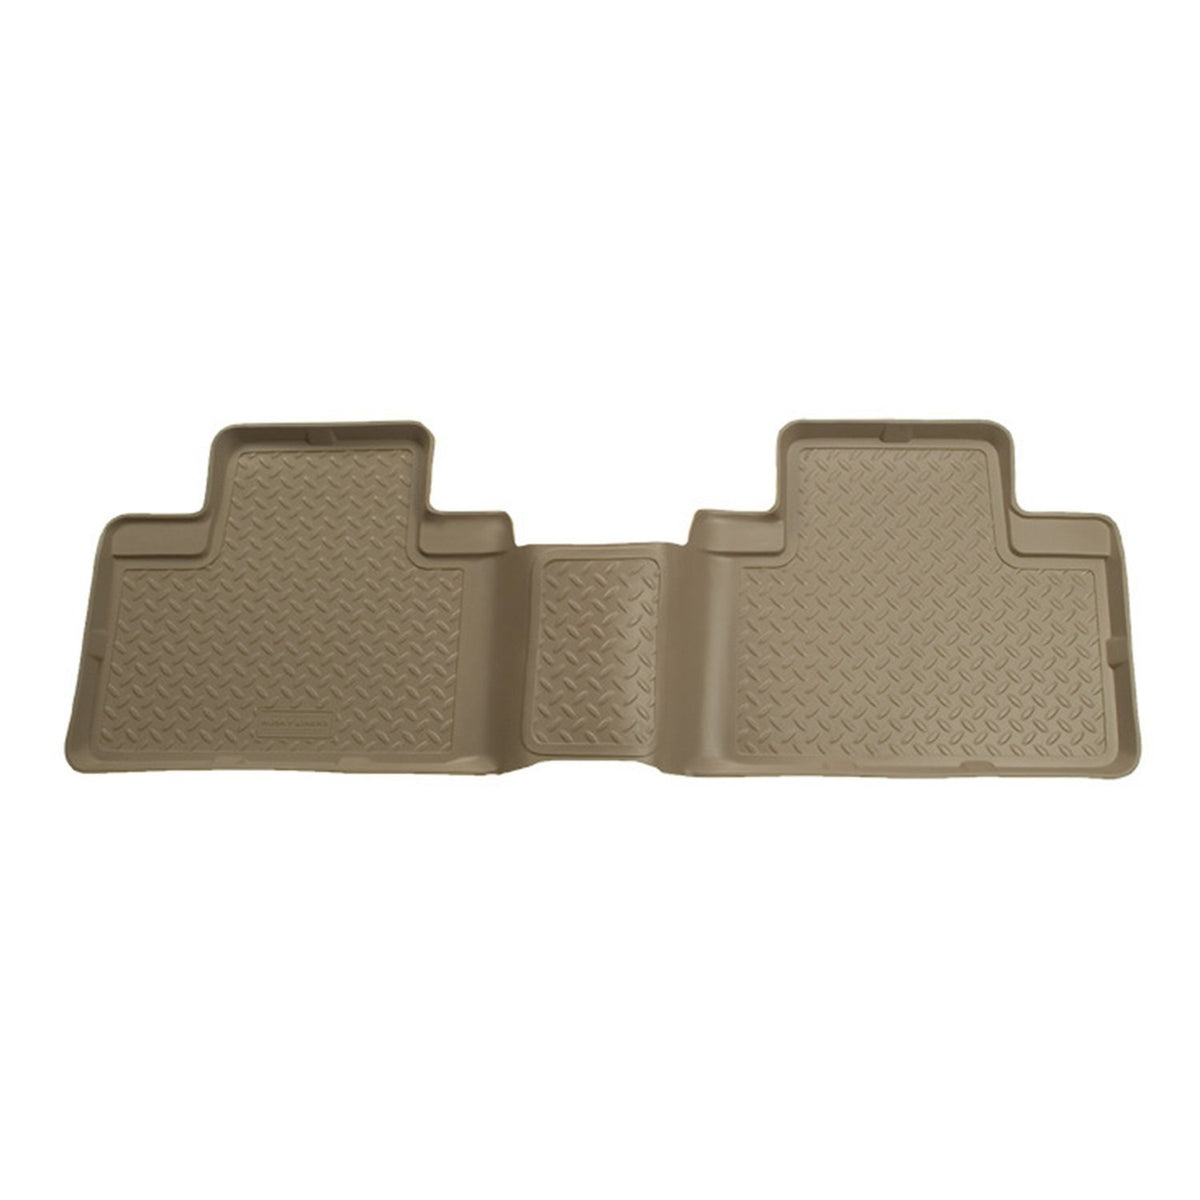 1988-2000 GM Full Size Truck 3DR/Ext. Cab Classic Style 2nd Row Tan Floor Liners by Husky Liners (61103) - Modern Automotive Performance